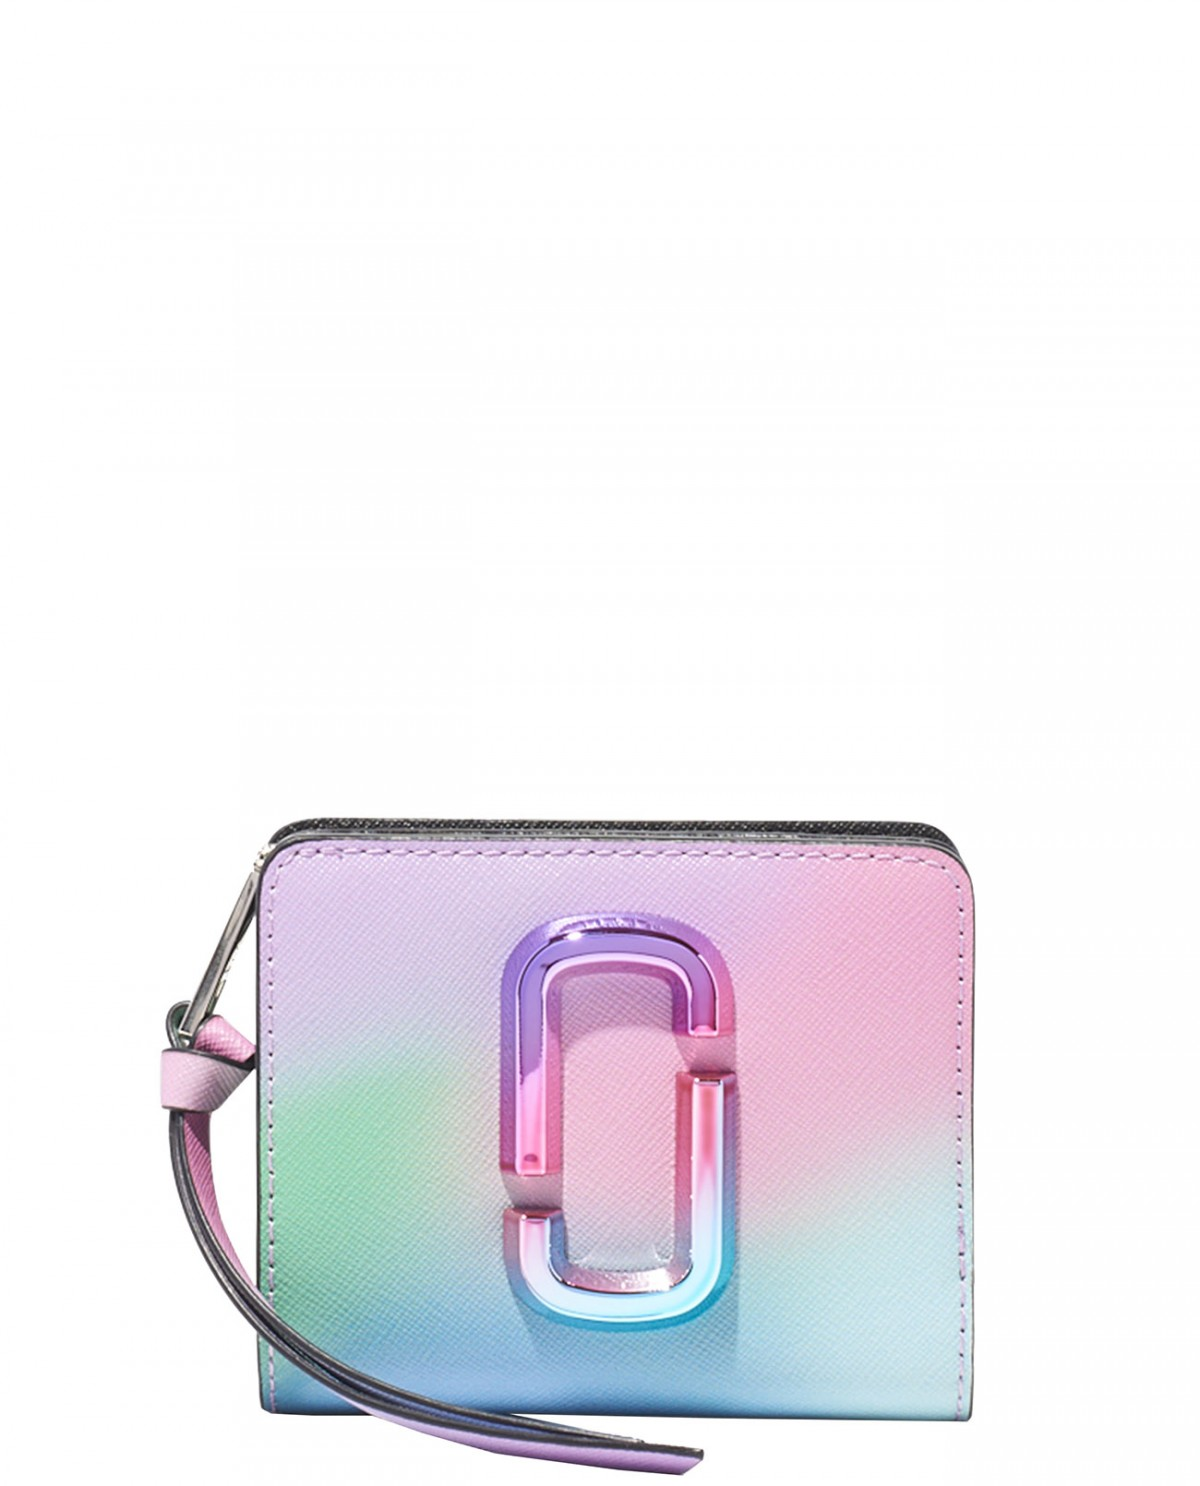 The Marc Jacobs airbrushed Snapshot...